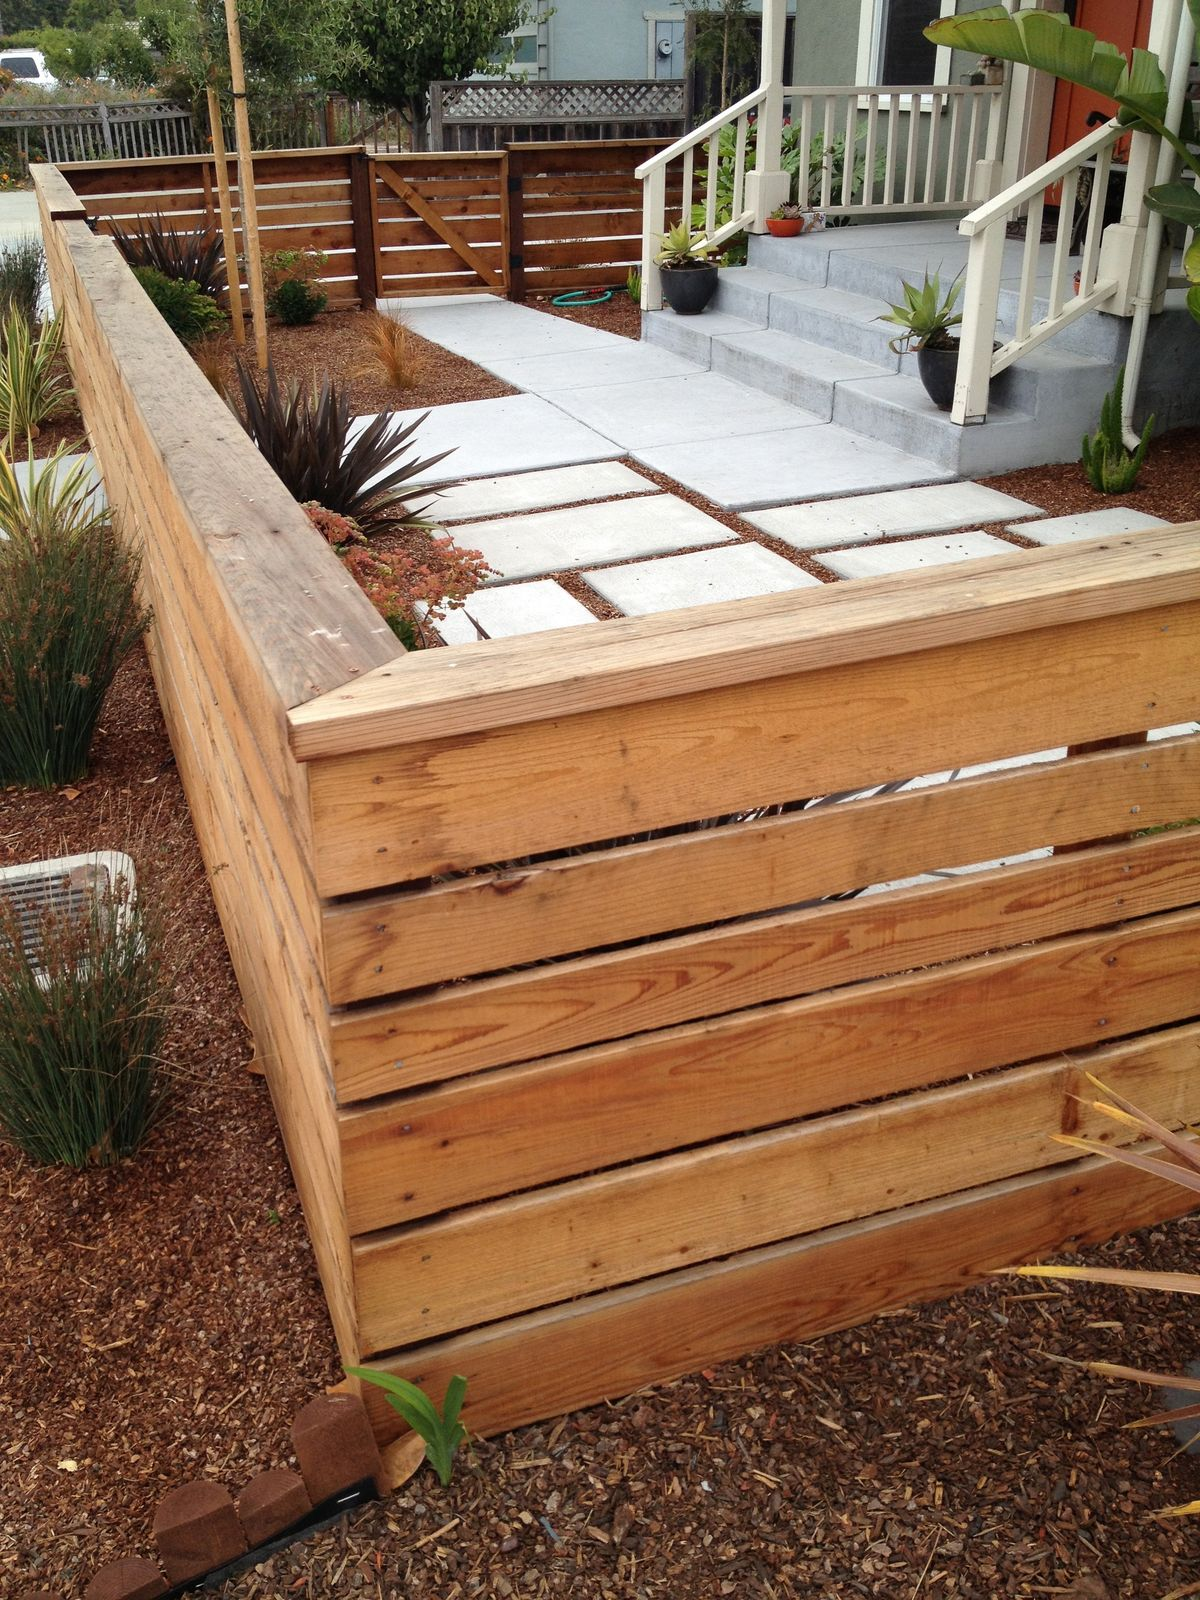 1000 ideas about horizontal fence on pinterest modern fence wood fences and fence. Black Bedroom Furniture Sets. Home Design Ideas